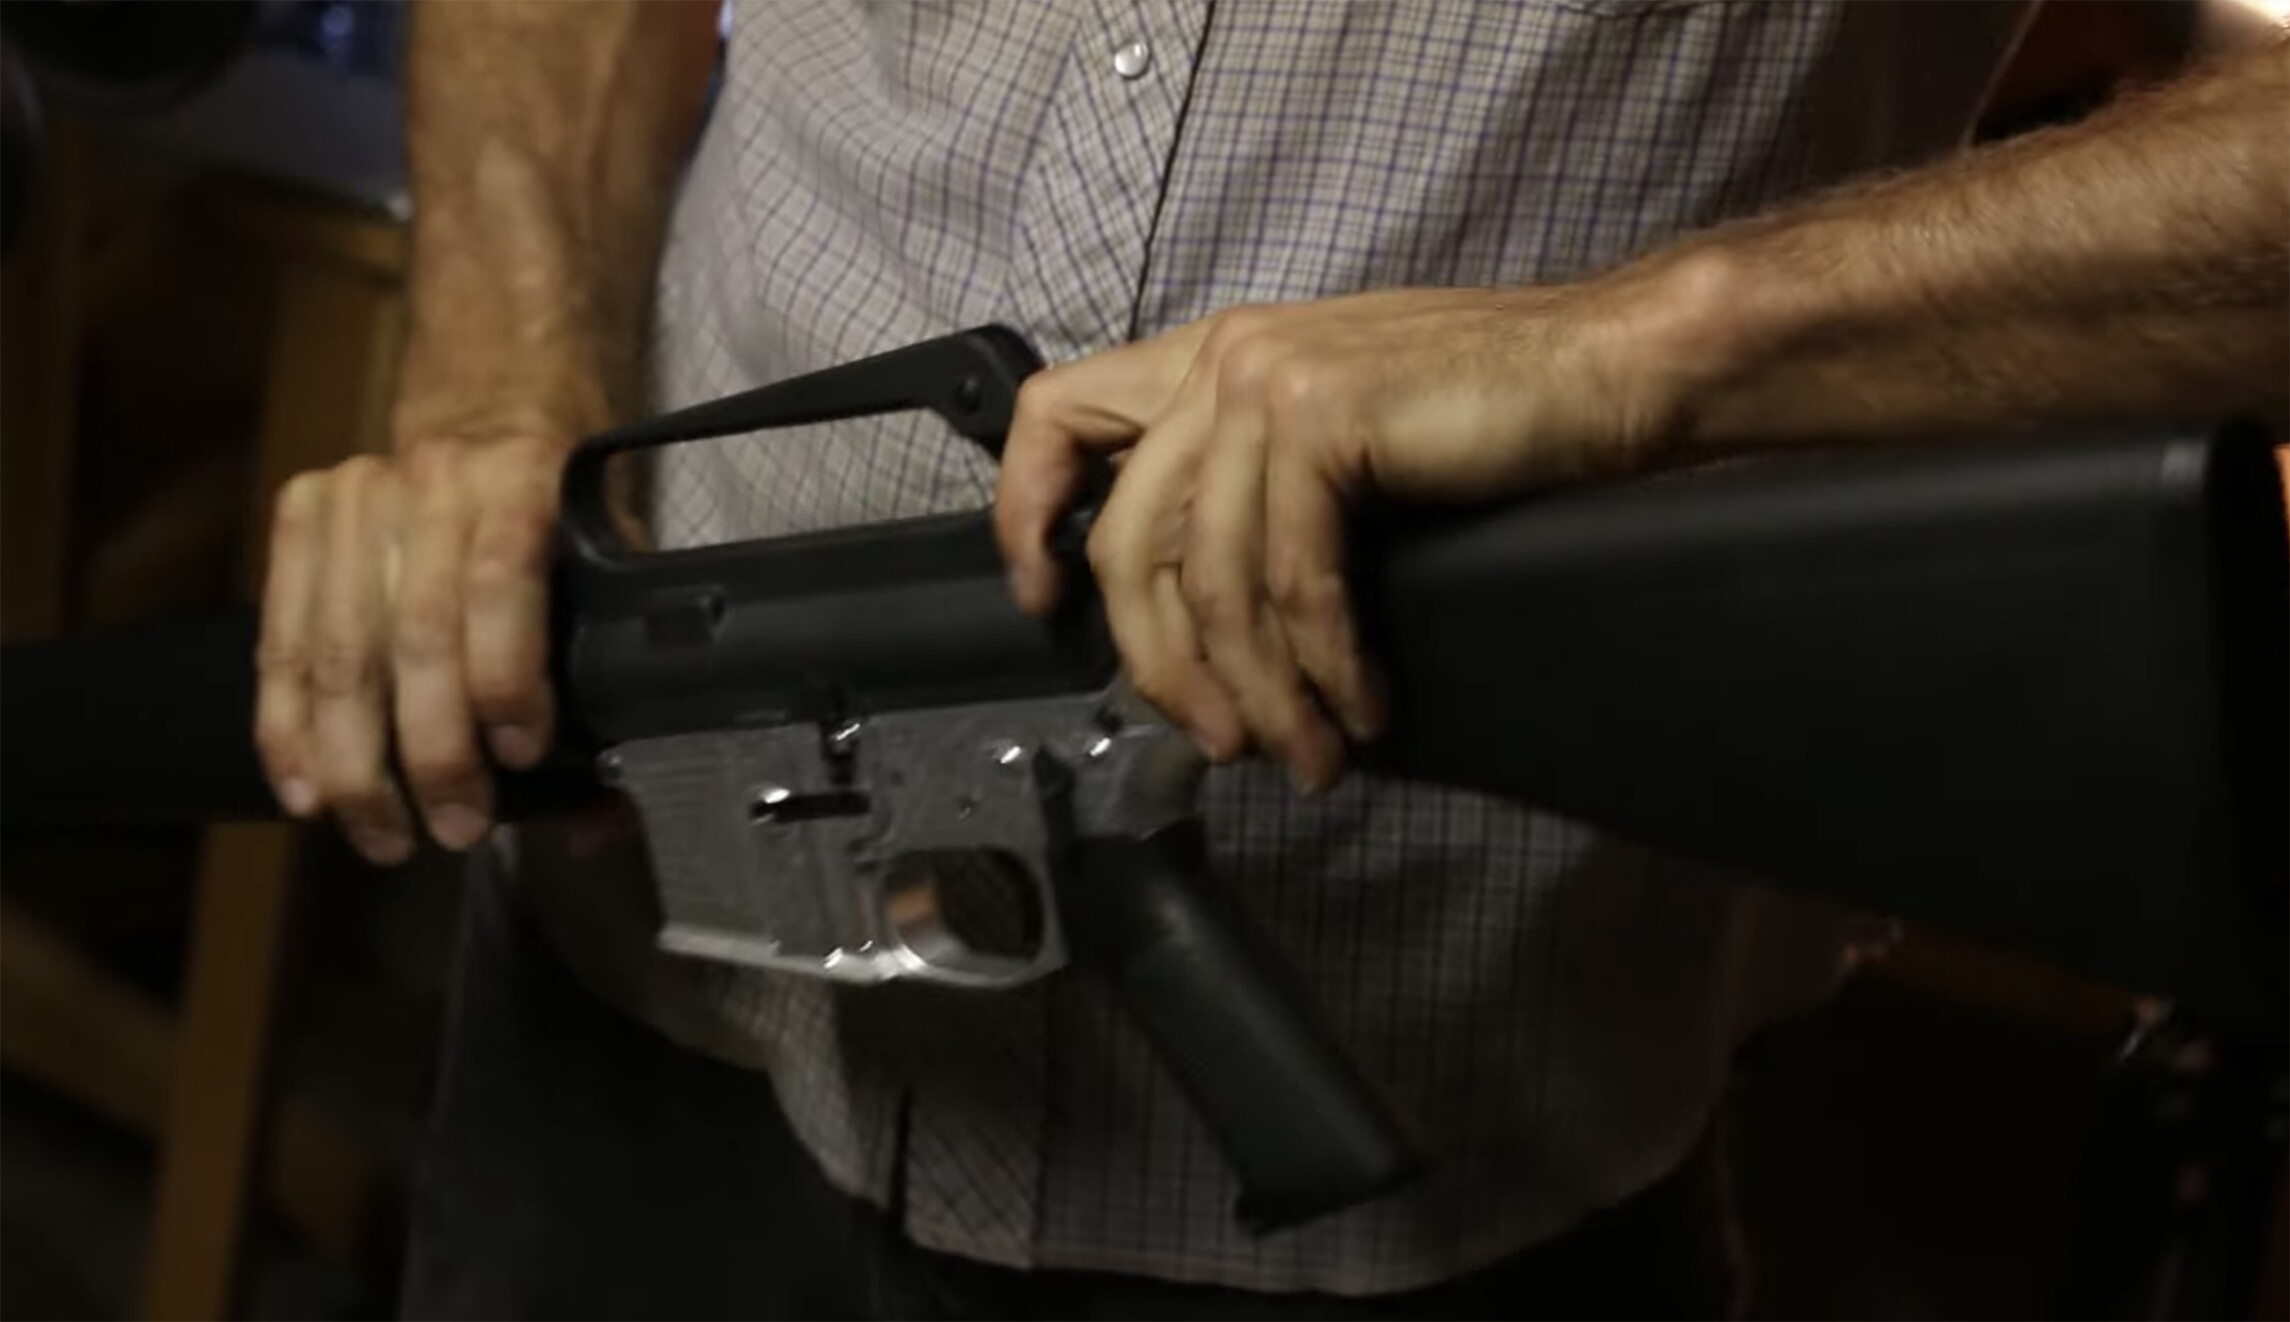 After Parkland, a surge in make-your-own AR-15 rifles